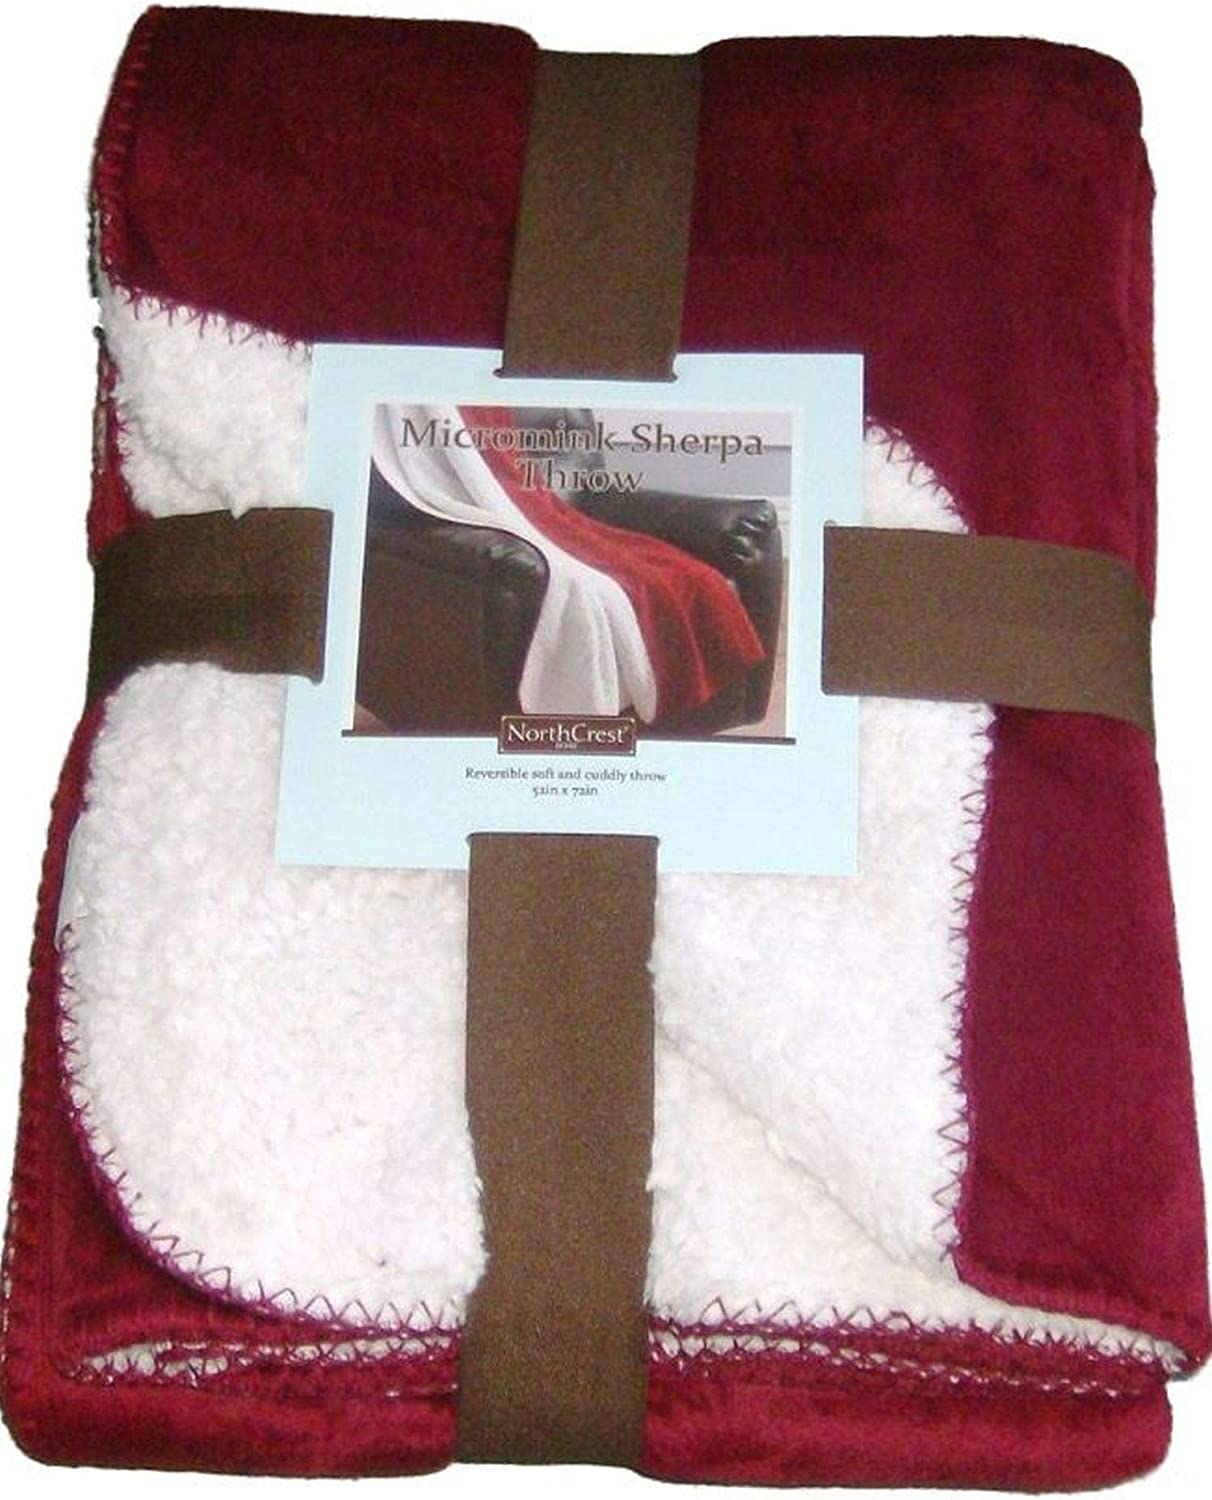 NorthCrest Home Sherpa Micromink Rich Red Oversized Soft Throw Blanket